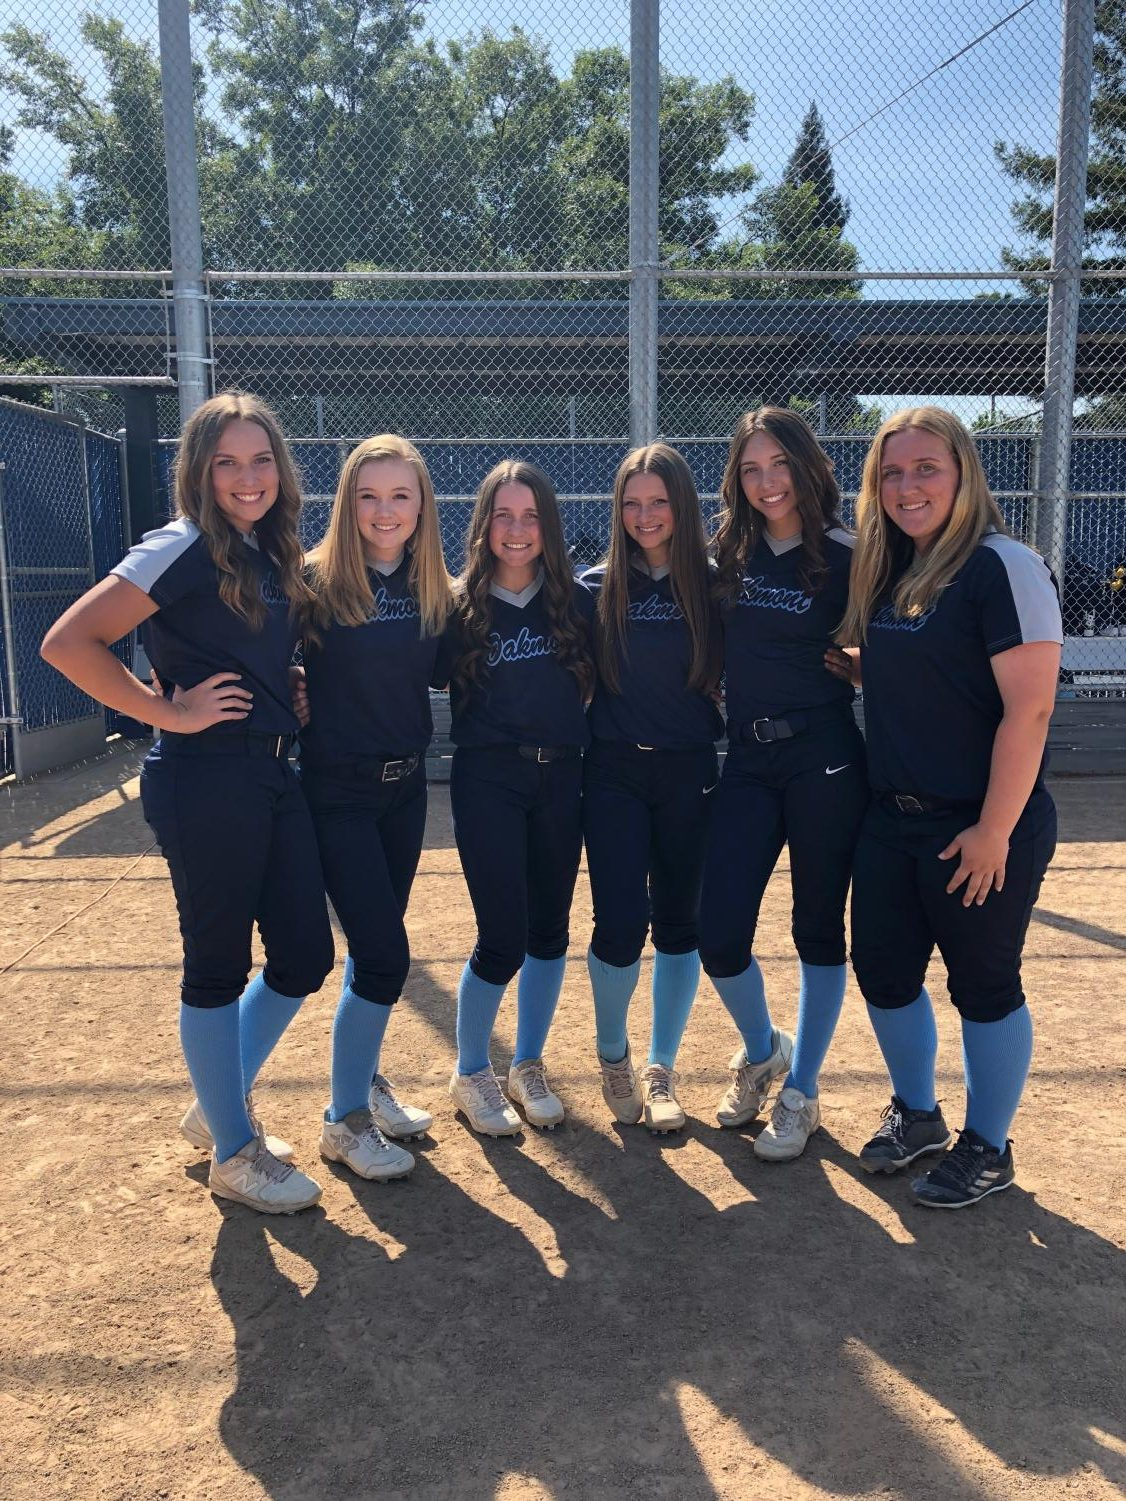 Senior Kailer Fulton, third from the left, pictured with five of her teammates.